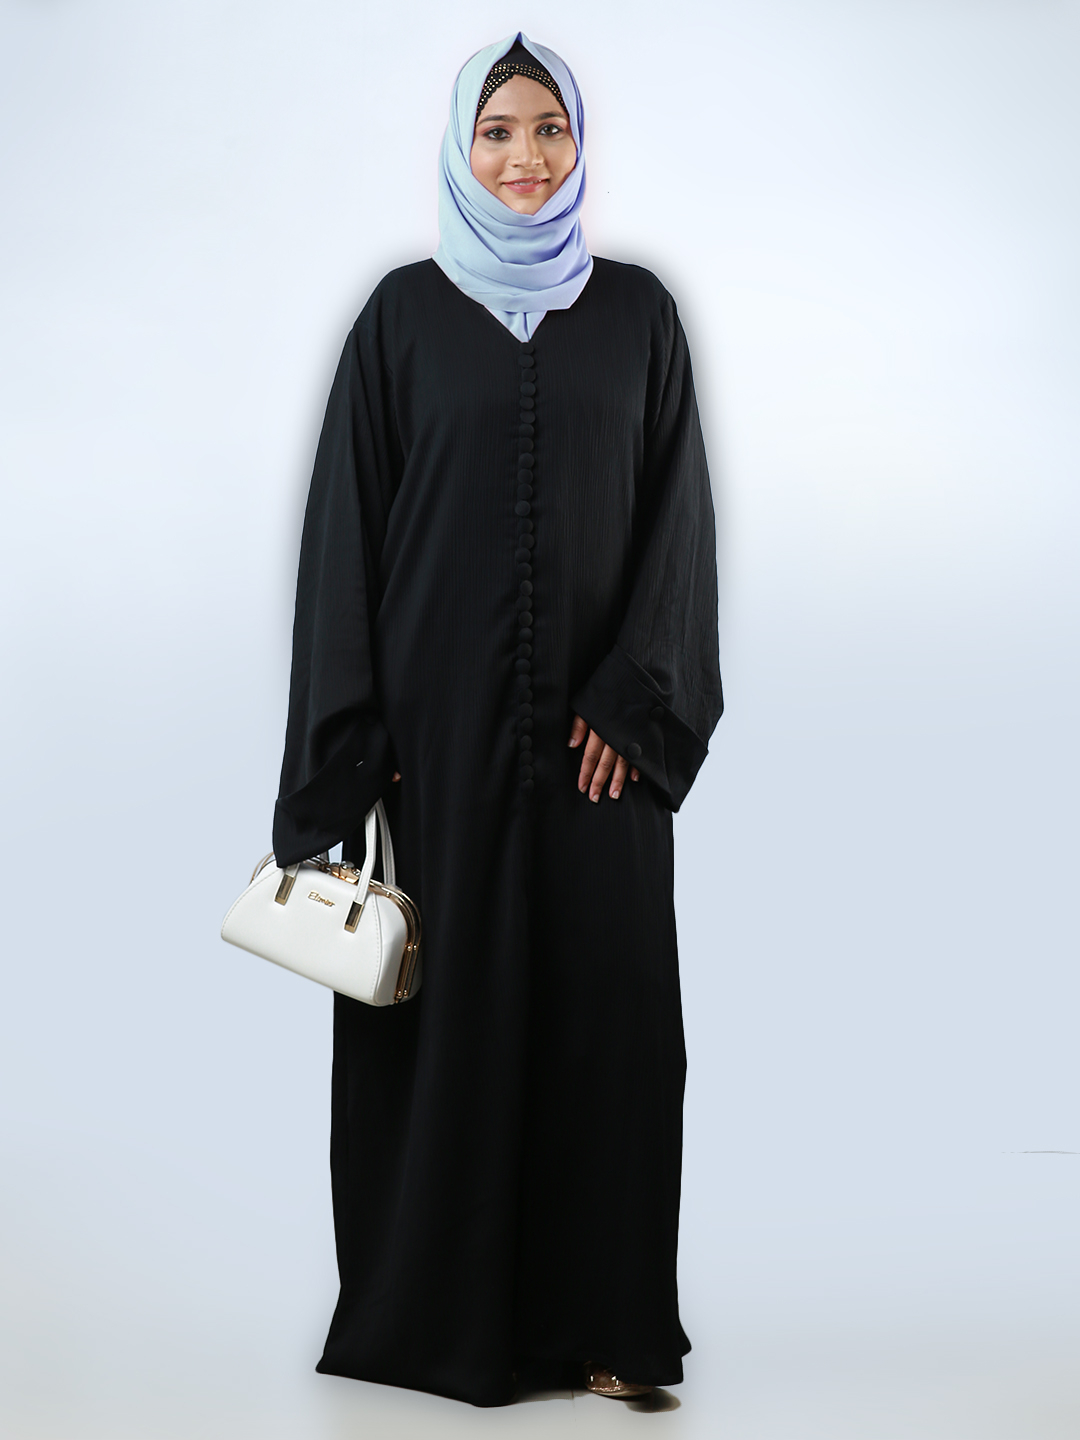 Korean Zoom Free Size Abaya Buttons On Front And Folding Sleeve in Black